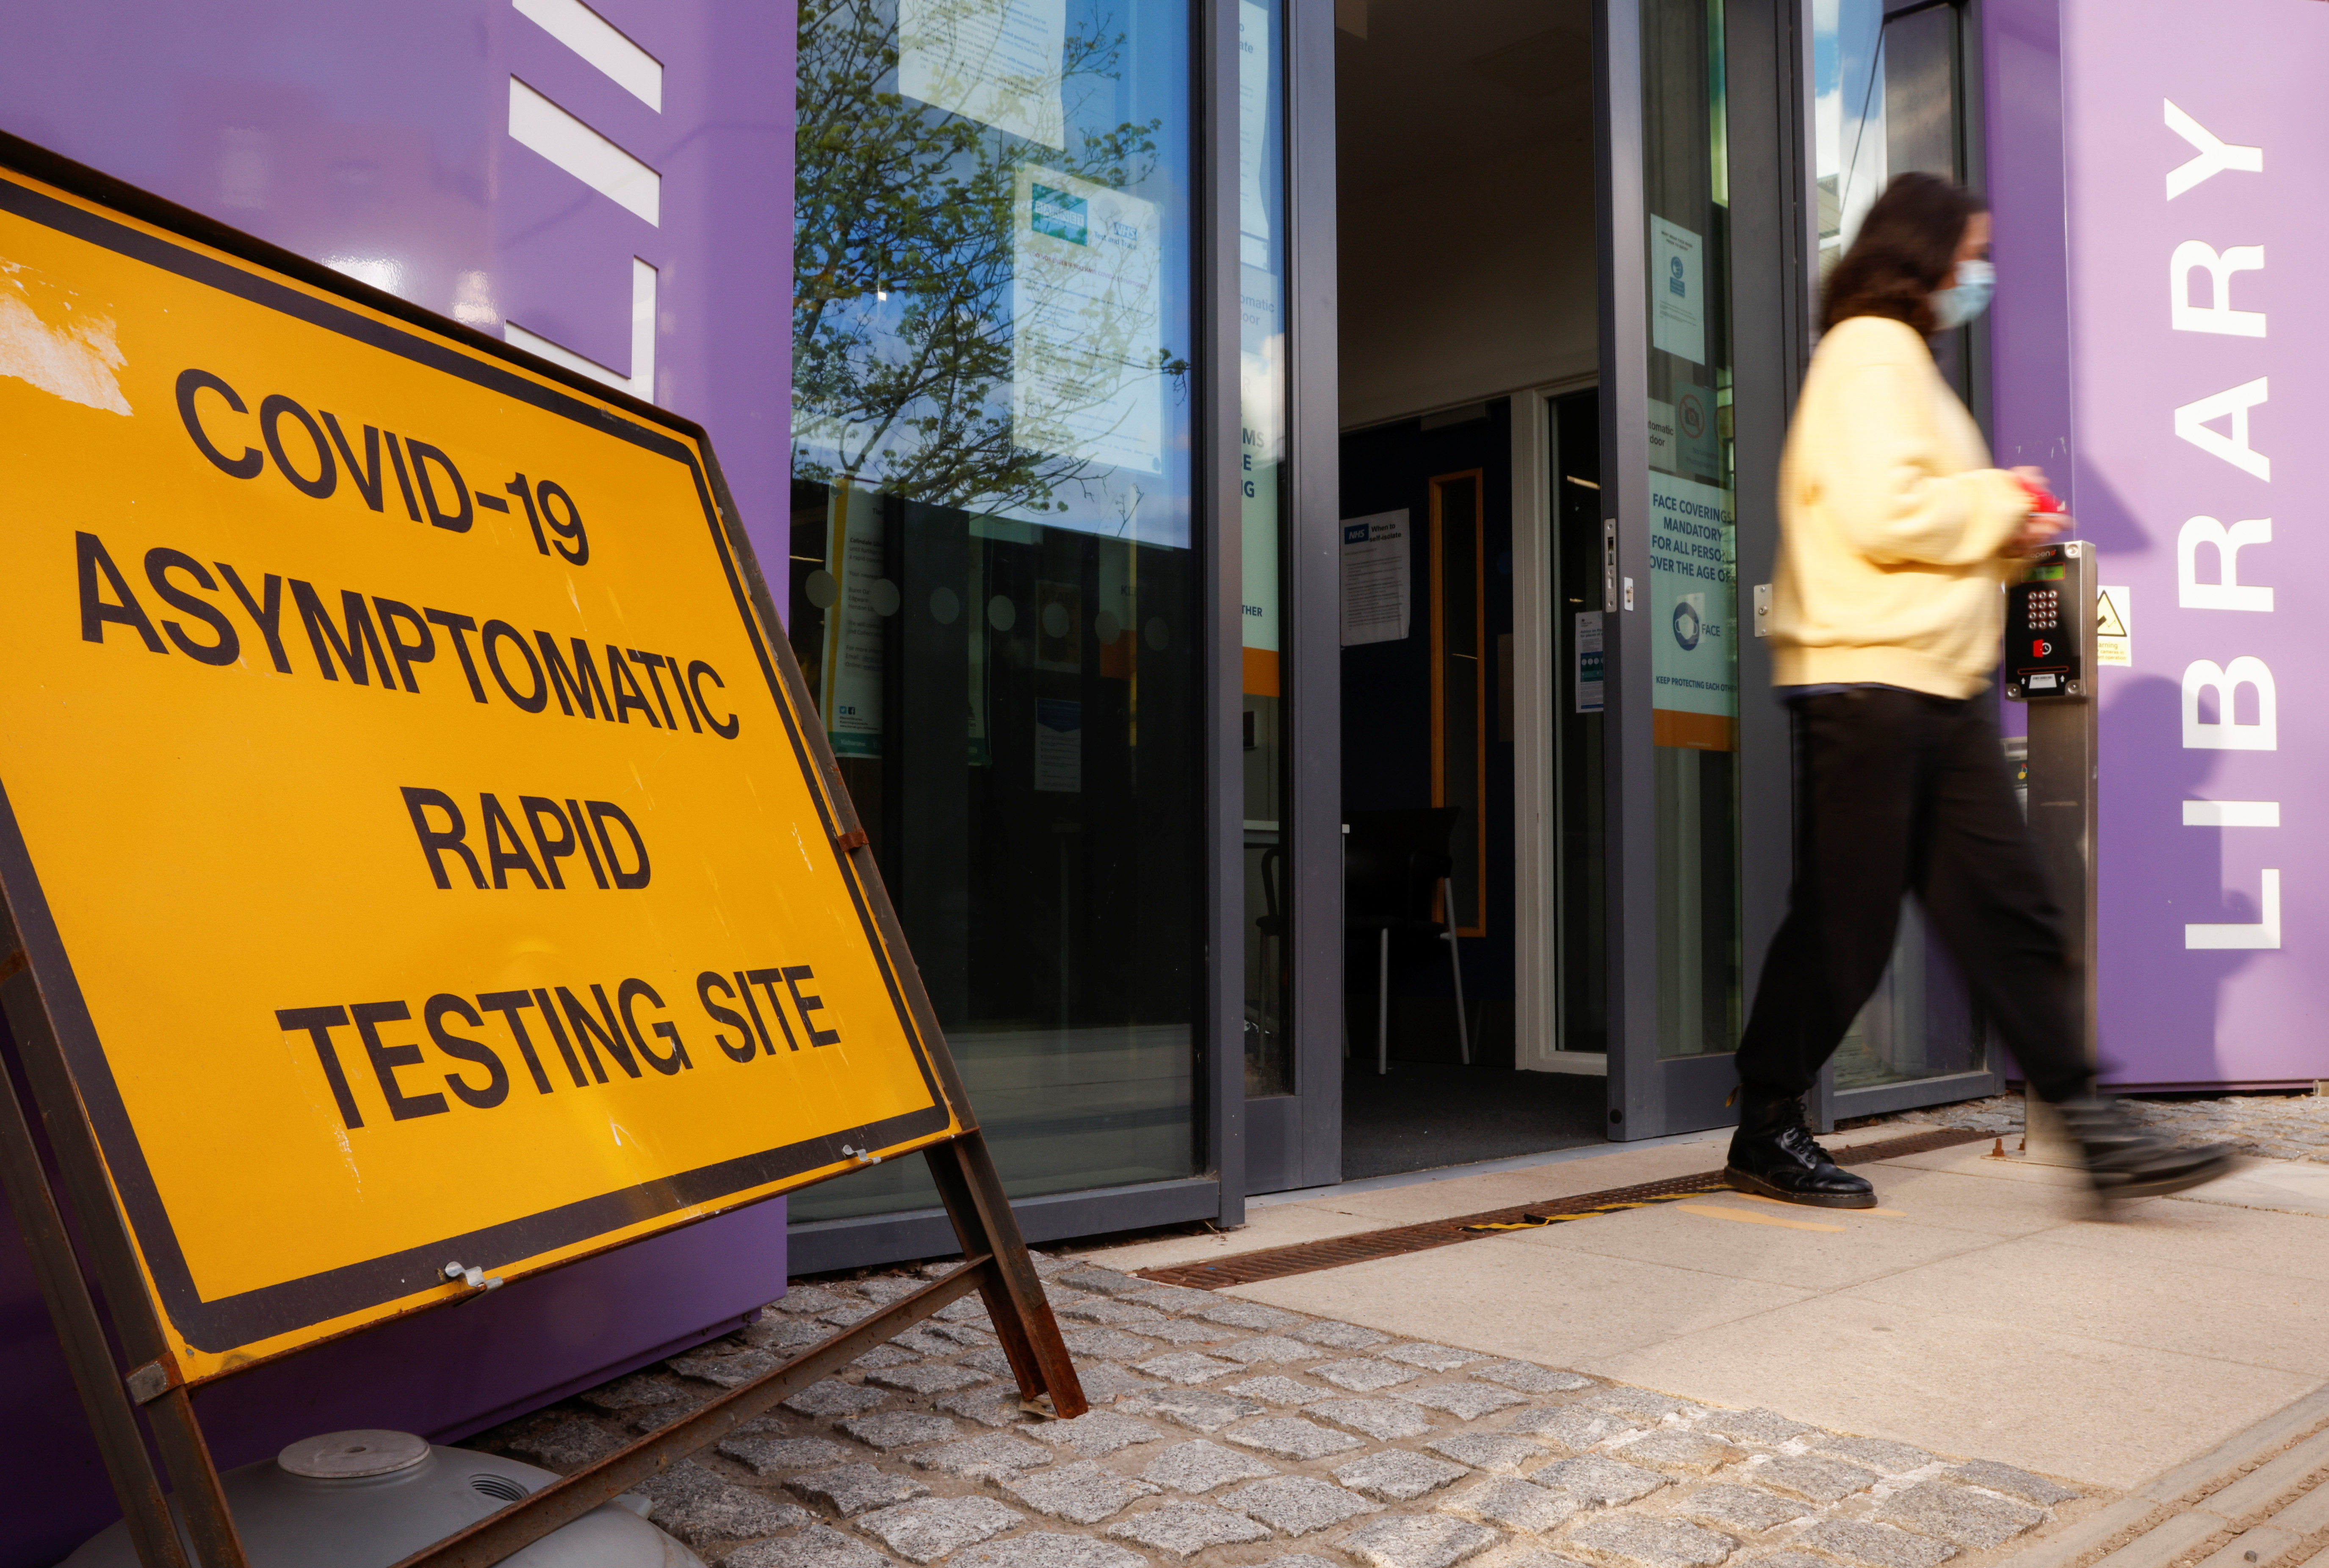 The entrance to a coronavirus disease (COVID-19) testing centre is pictured in Barnet, London, Britain, April 14, 2021. REUTERS/John Sibley